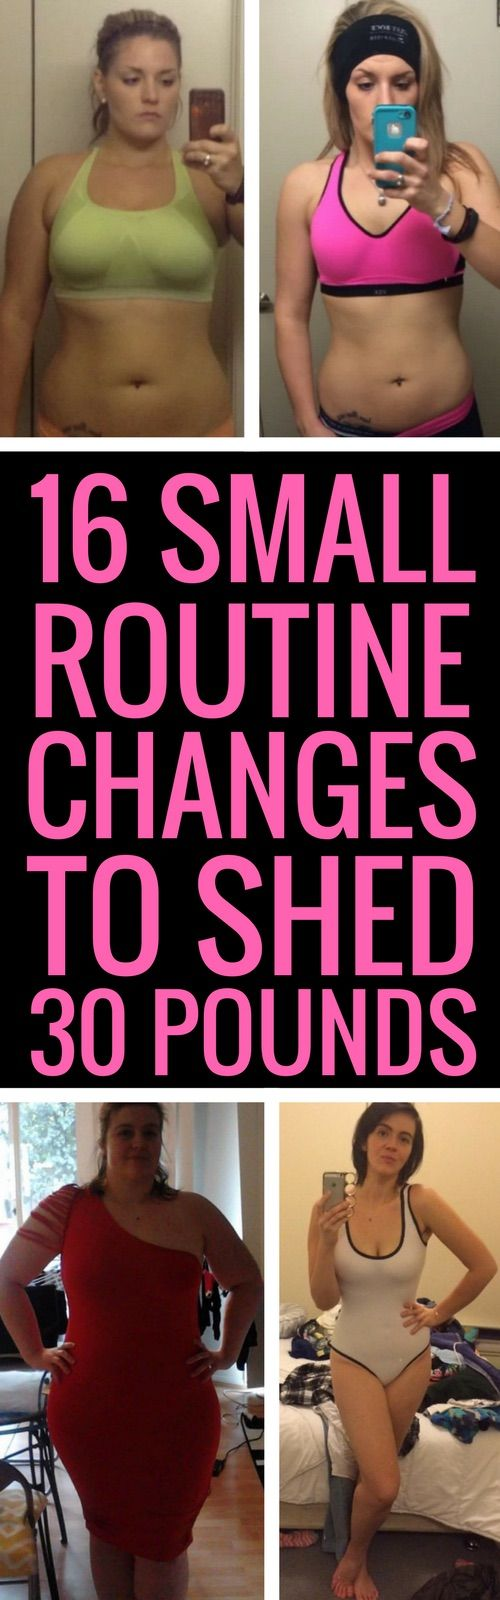 16 small changes to your daily routine to lose weight faster.